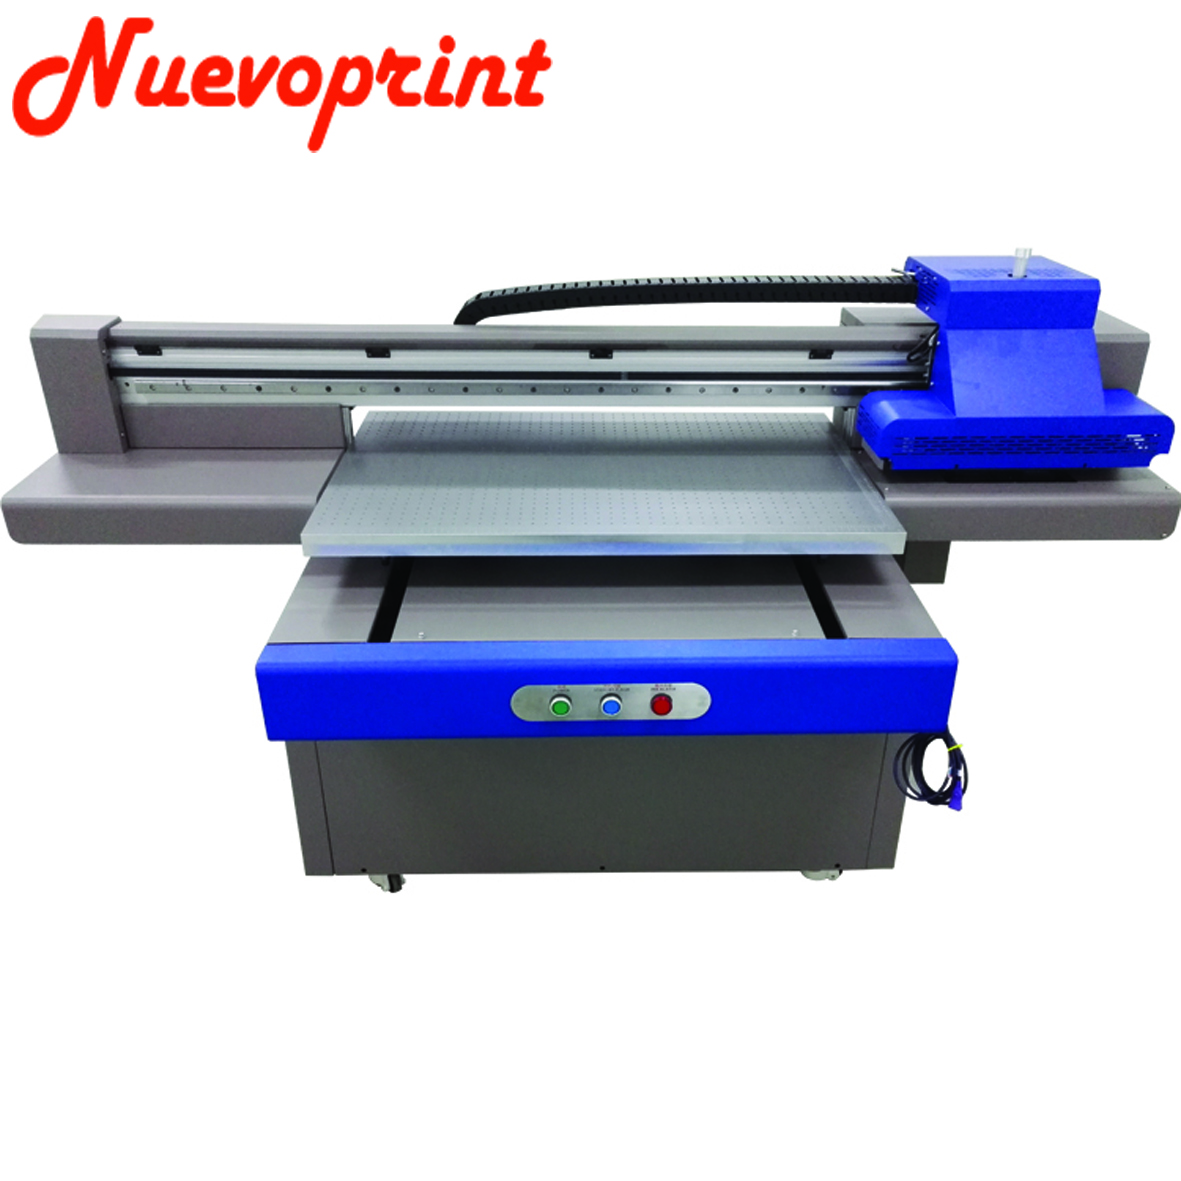 2018 best 24 inch inkjet flatbed uv golf ball inkjet printer price NVP6090T